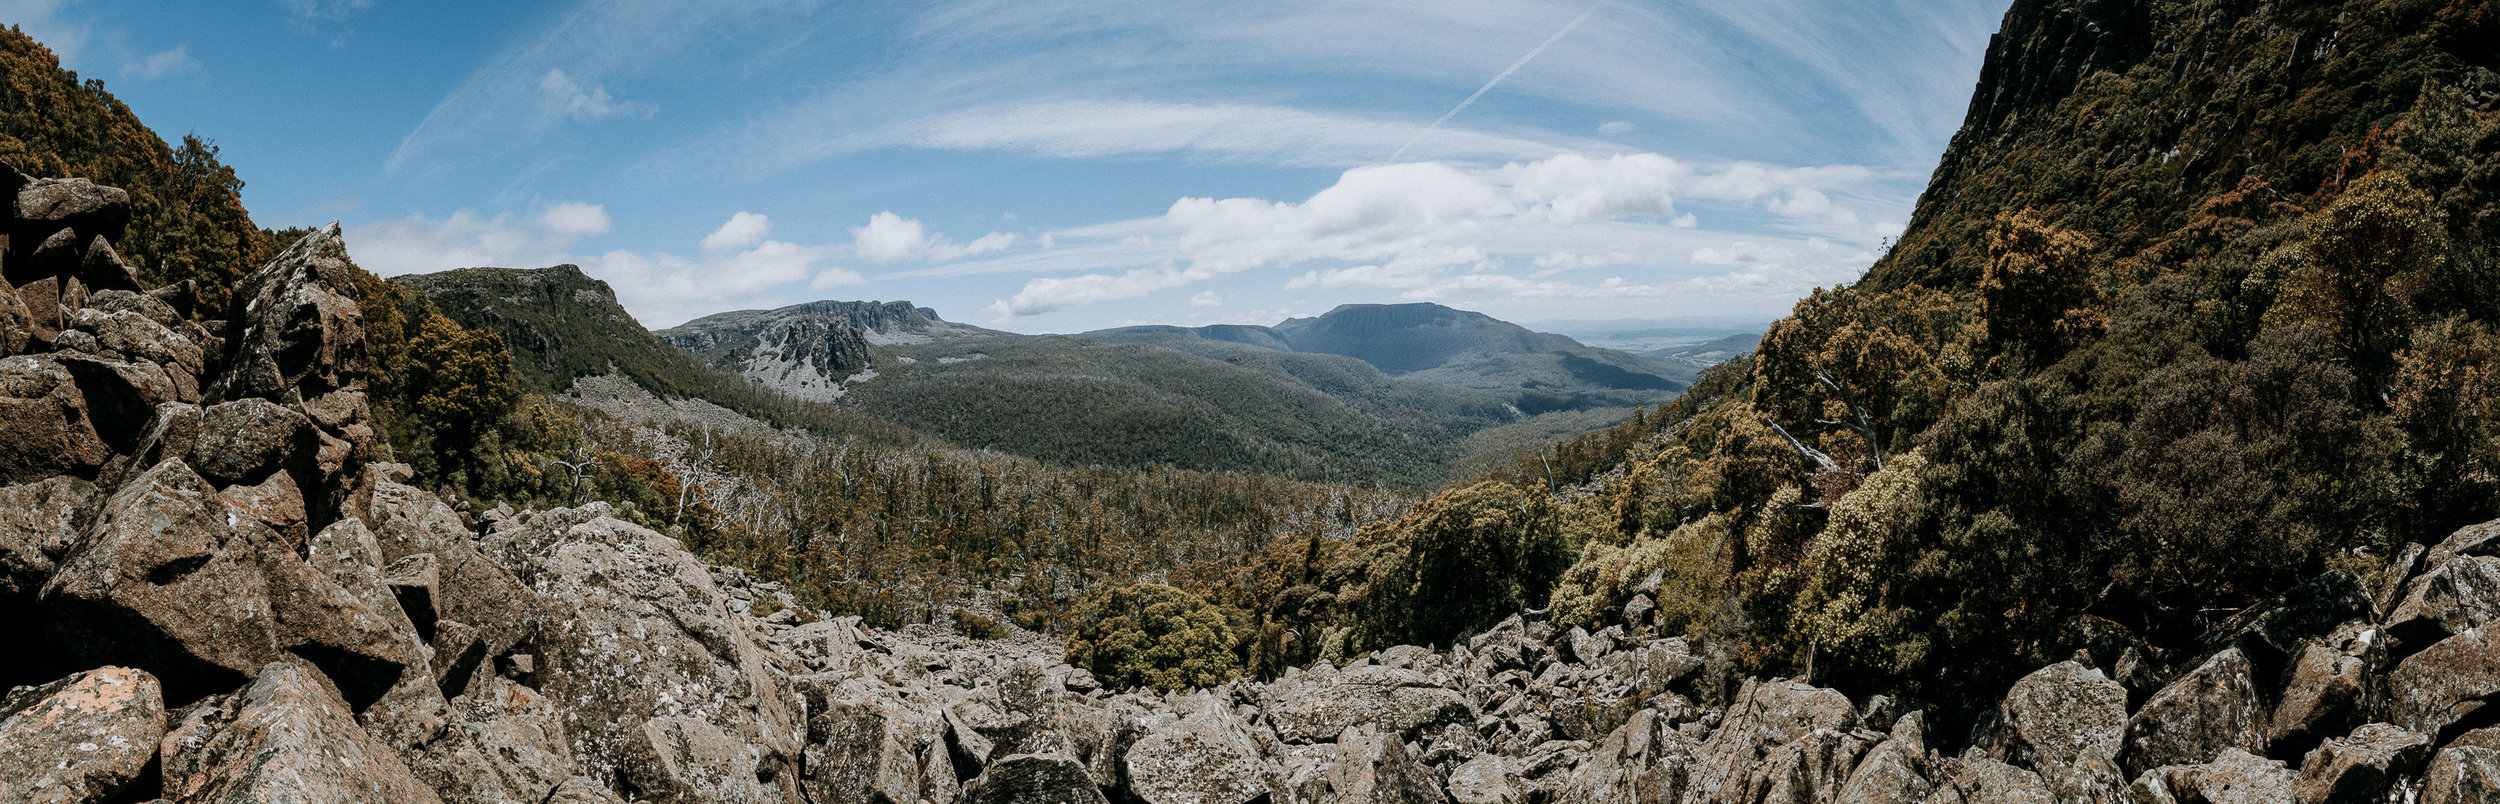 248/365 | What a place for a panorama! From Dixons Track.